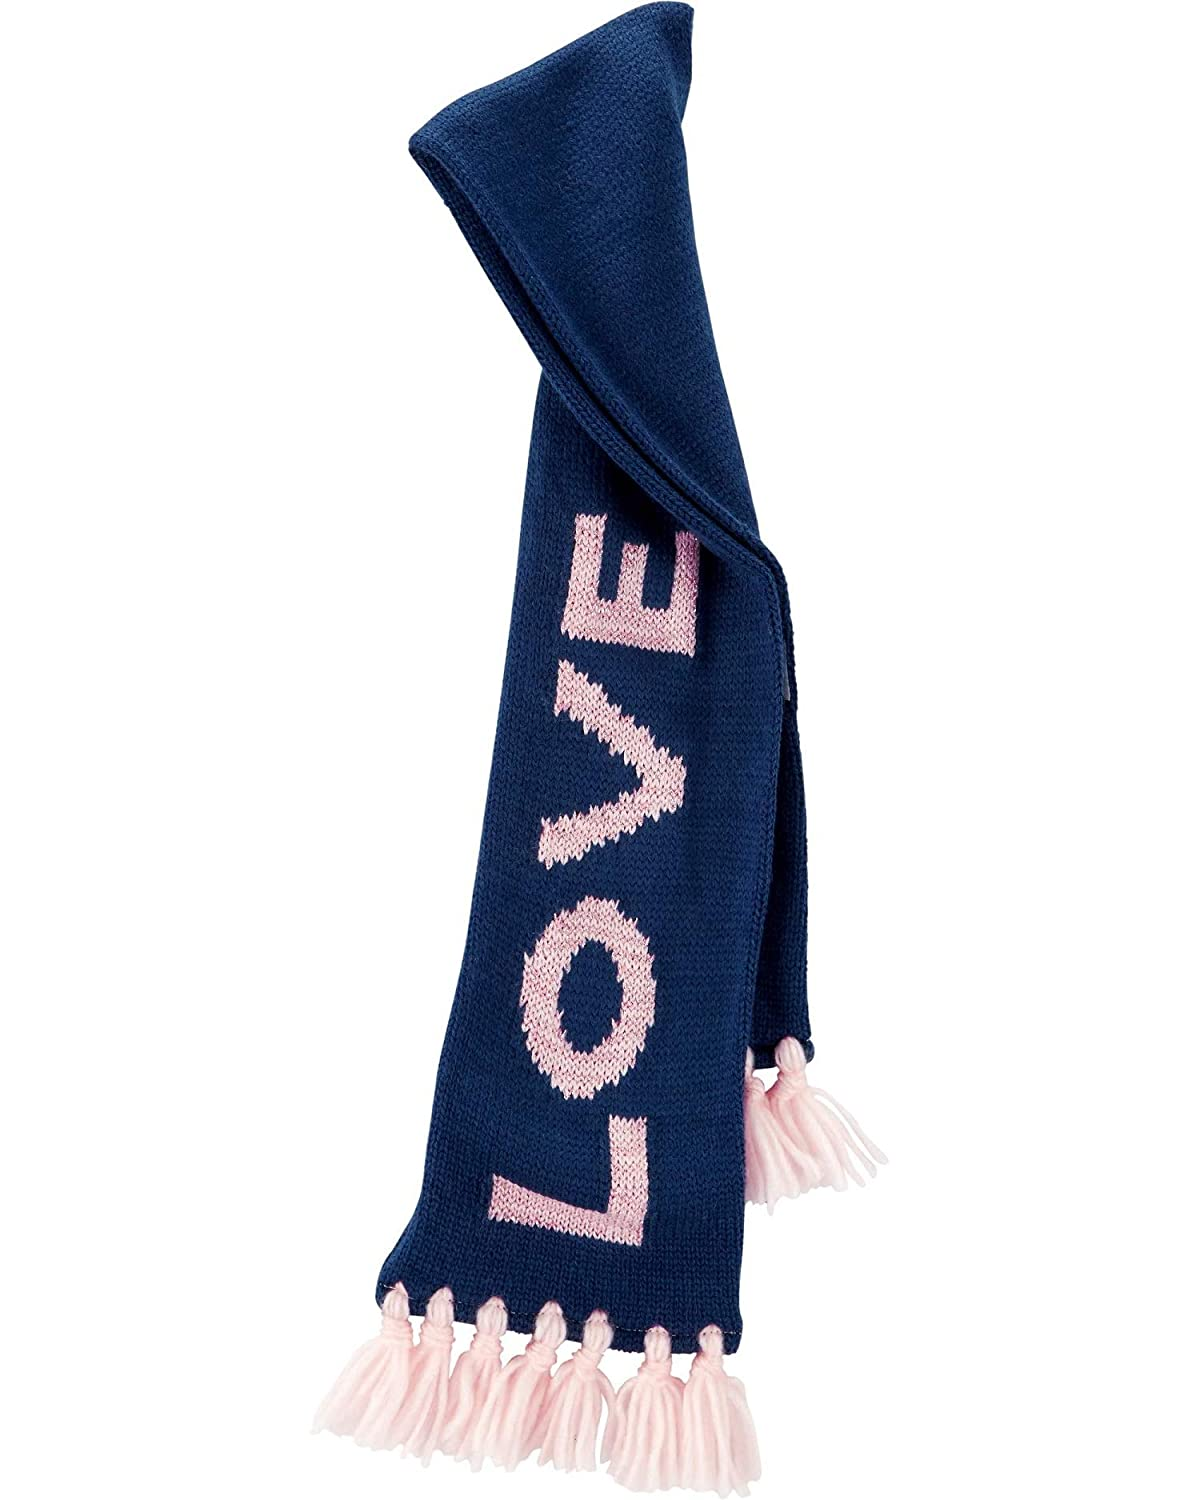 8-14 Years Carters Little Girls Sequin Love Scarf